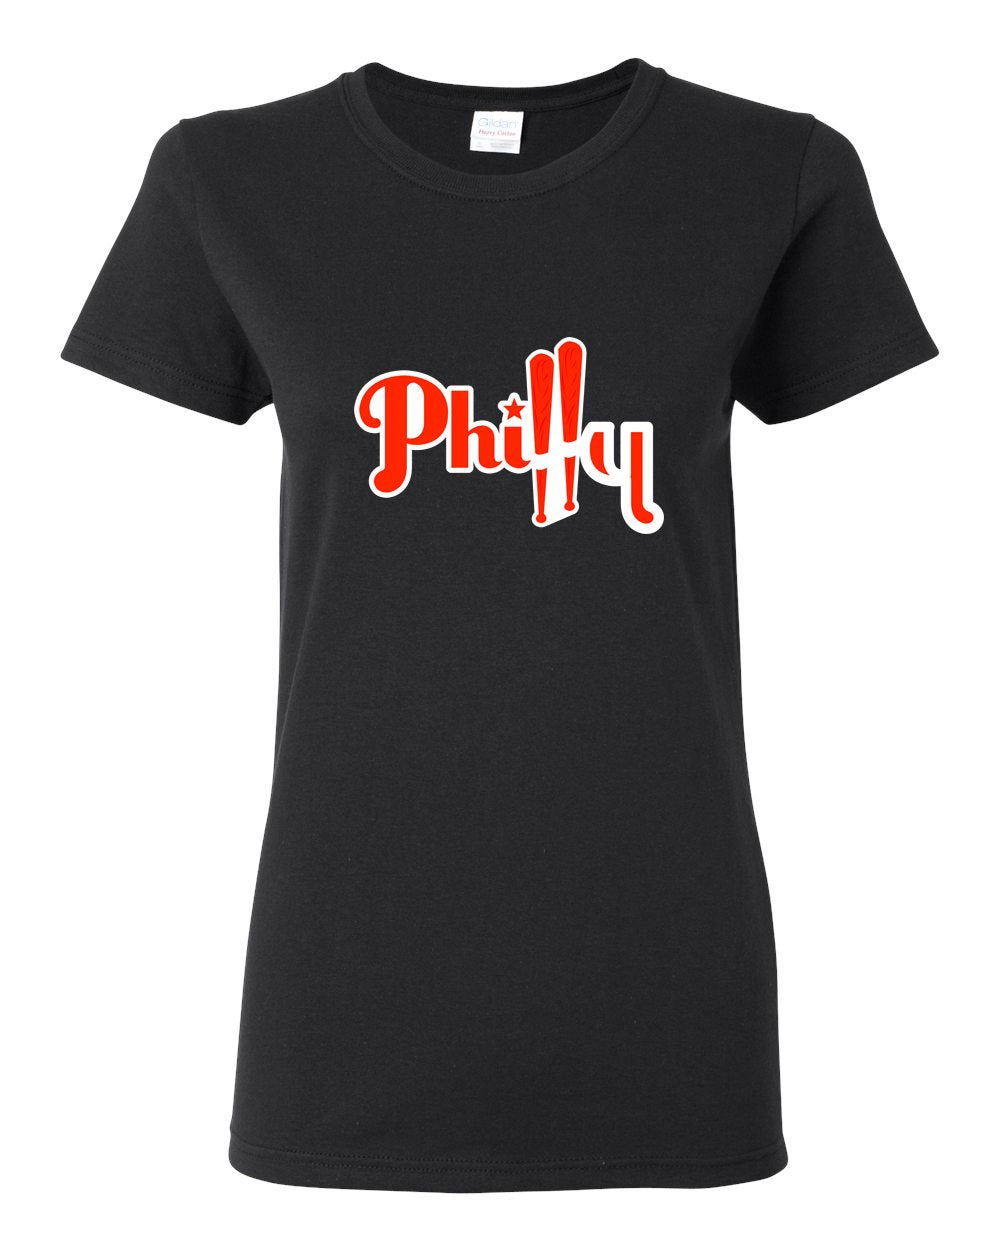 Philly Baseball LADIES Missy-Fit T-Shirt